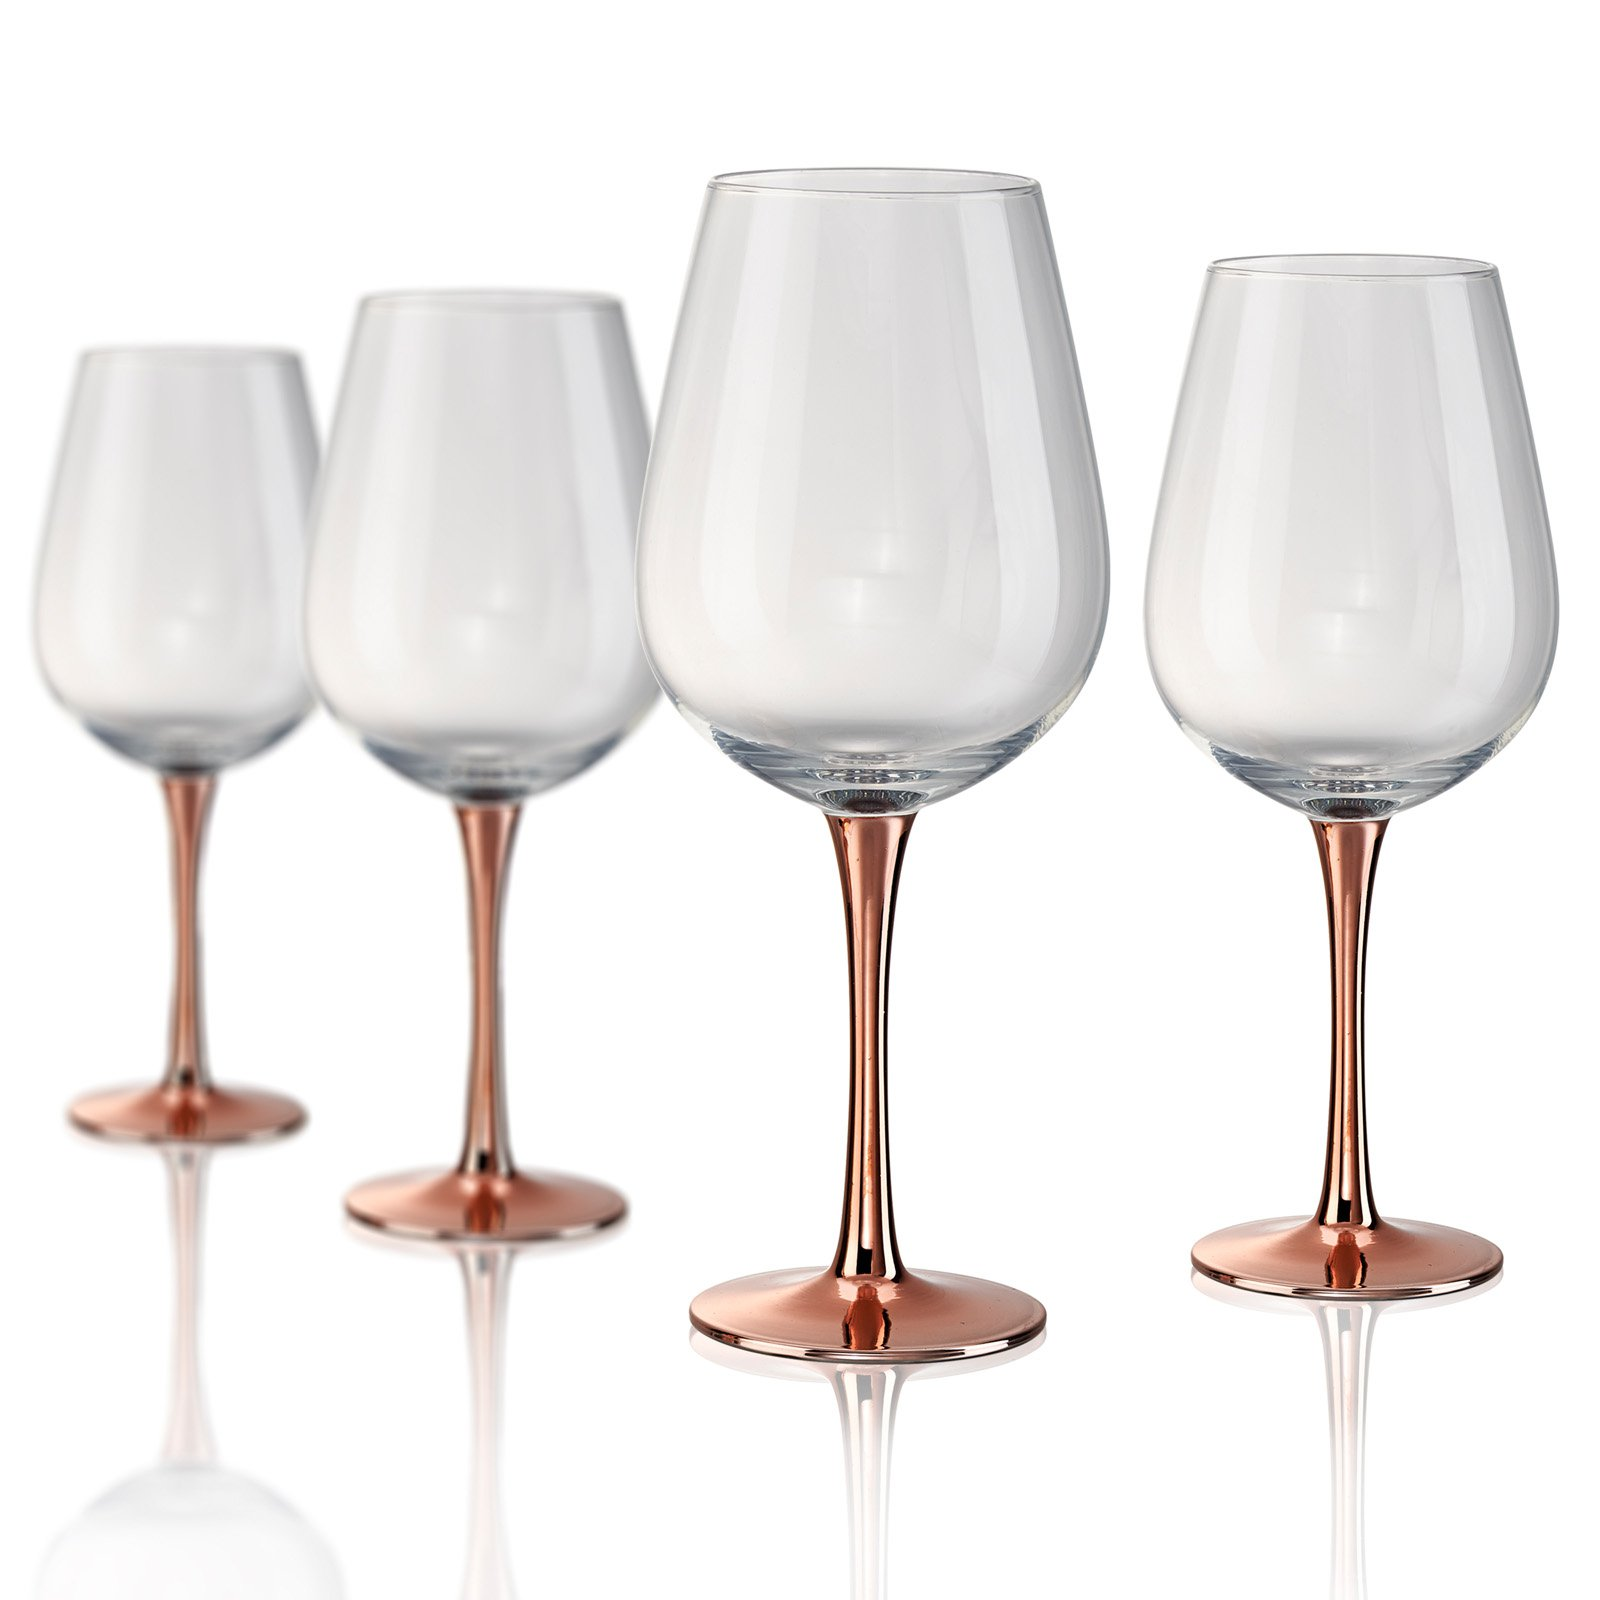 Artland Coppertino Goblet - Set of 4